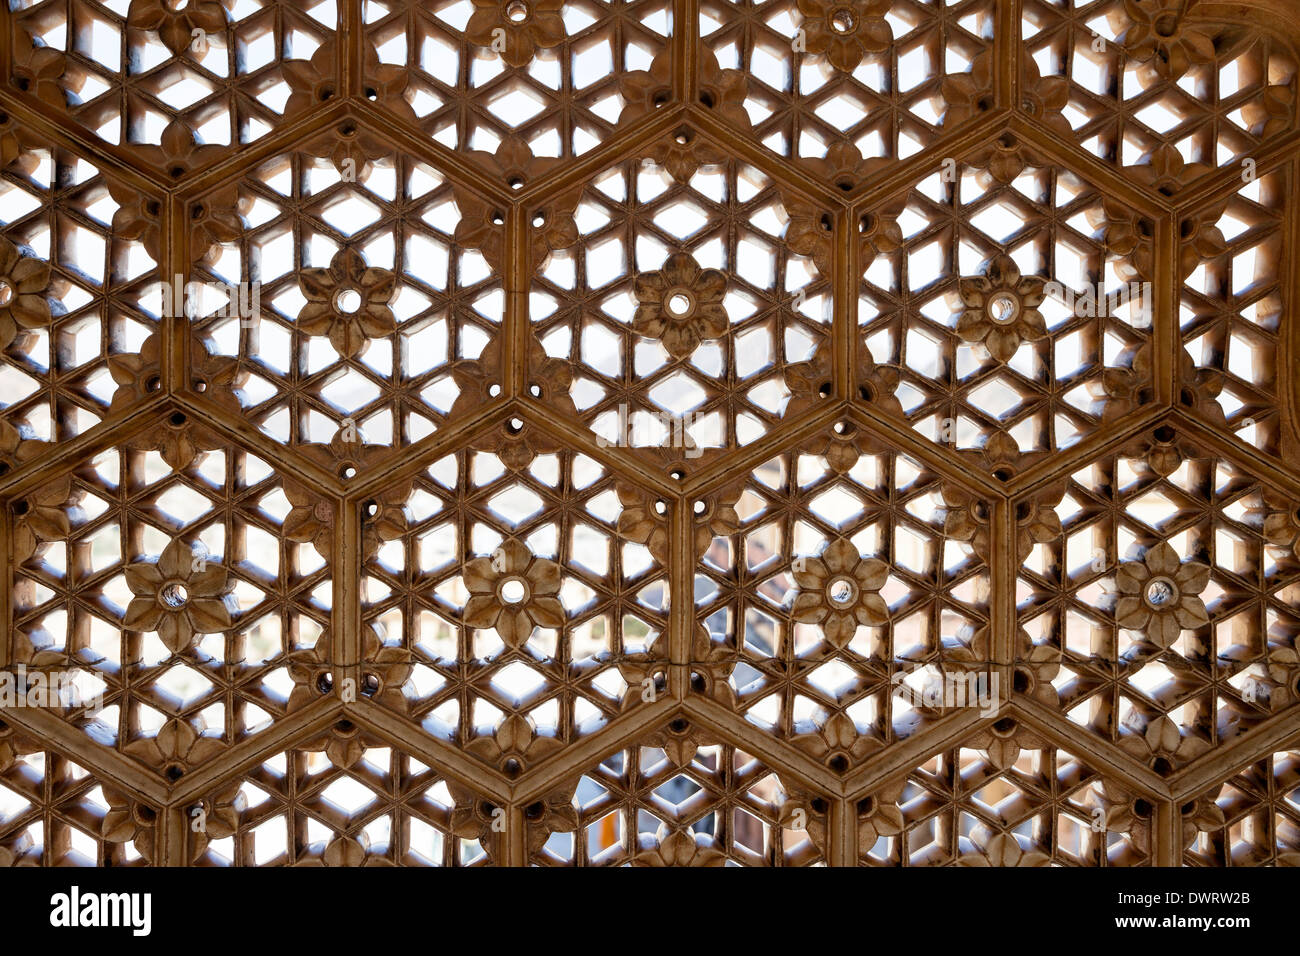 Jaipur, Rajasthan, India. Hexagons and Diamond Shapes used in Window Latticework, Amber (or Amer) Palace, near Jaipur. - Stock Image